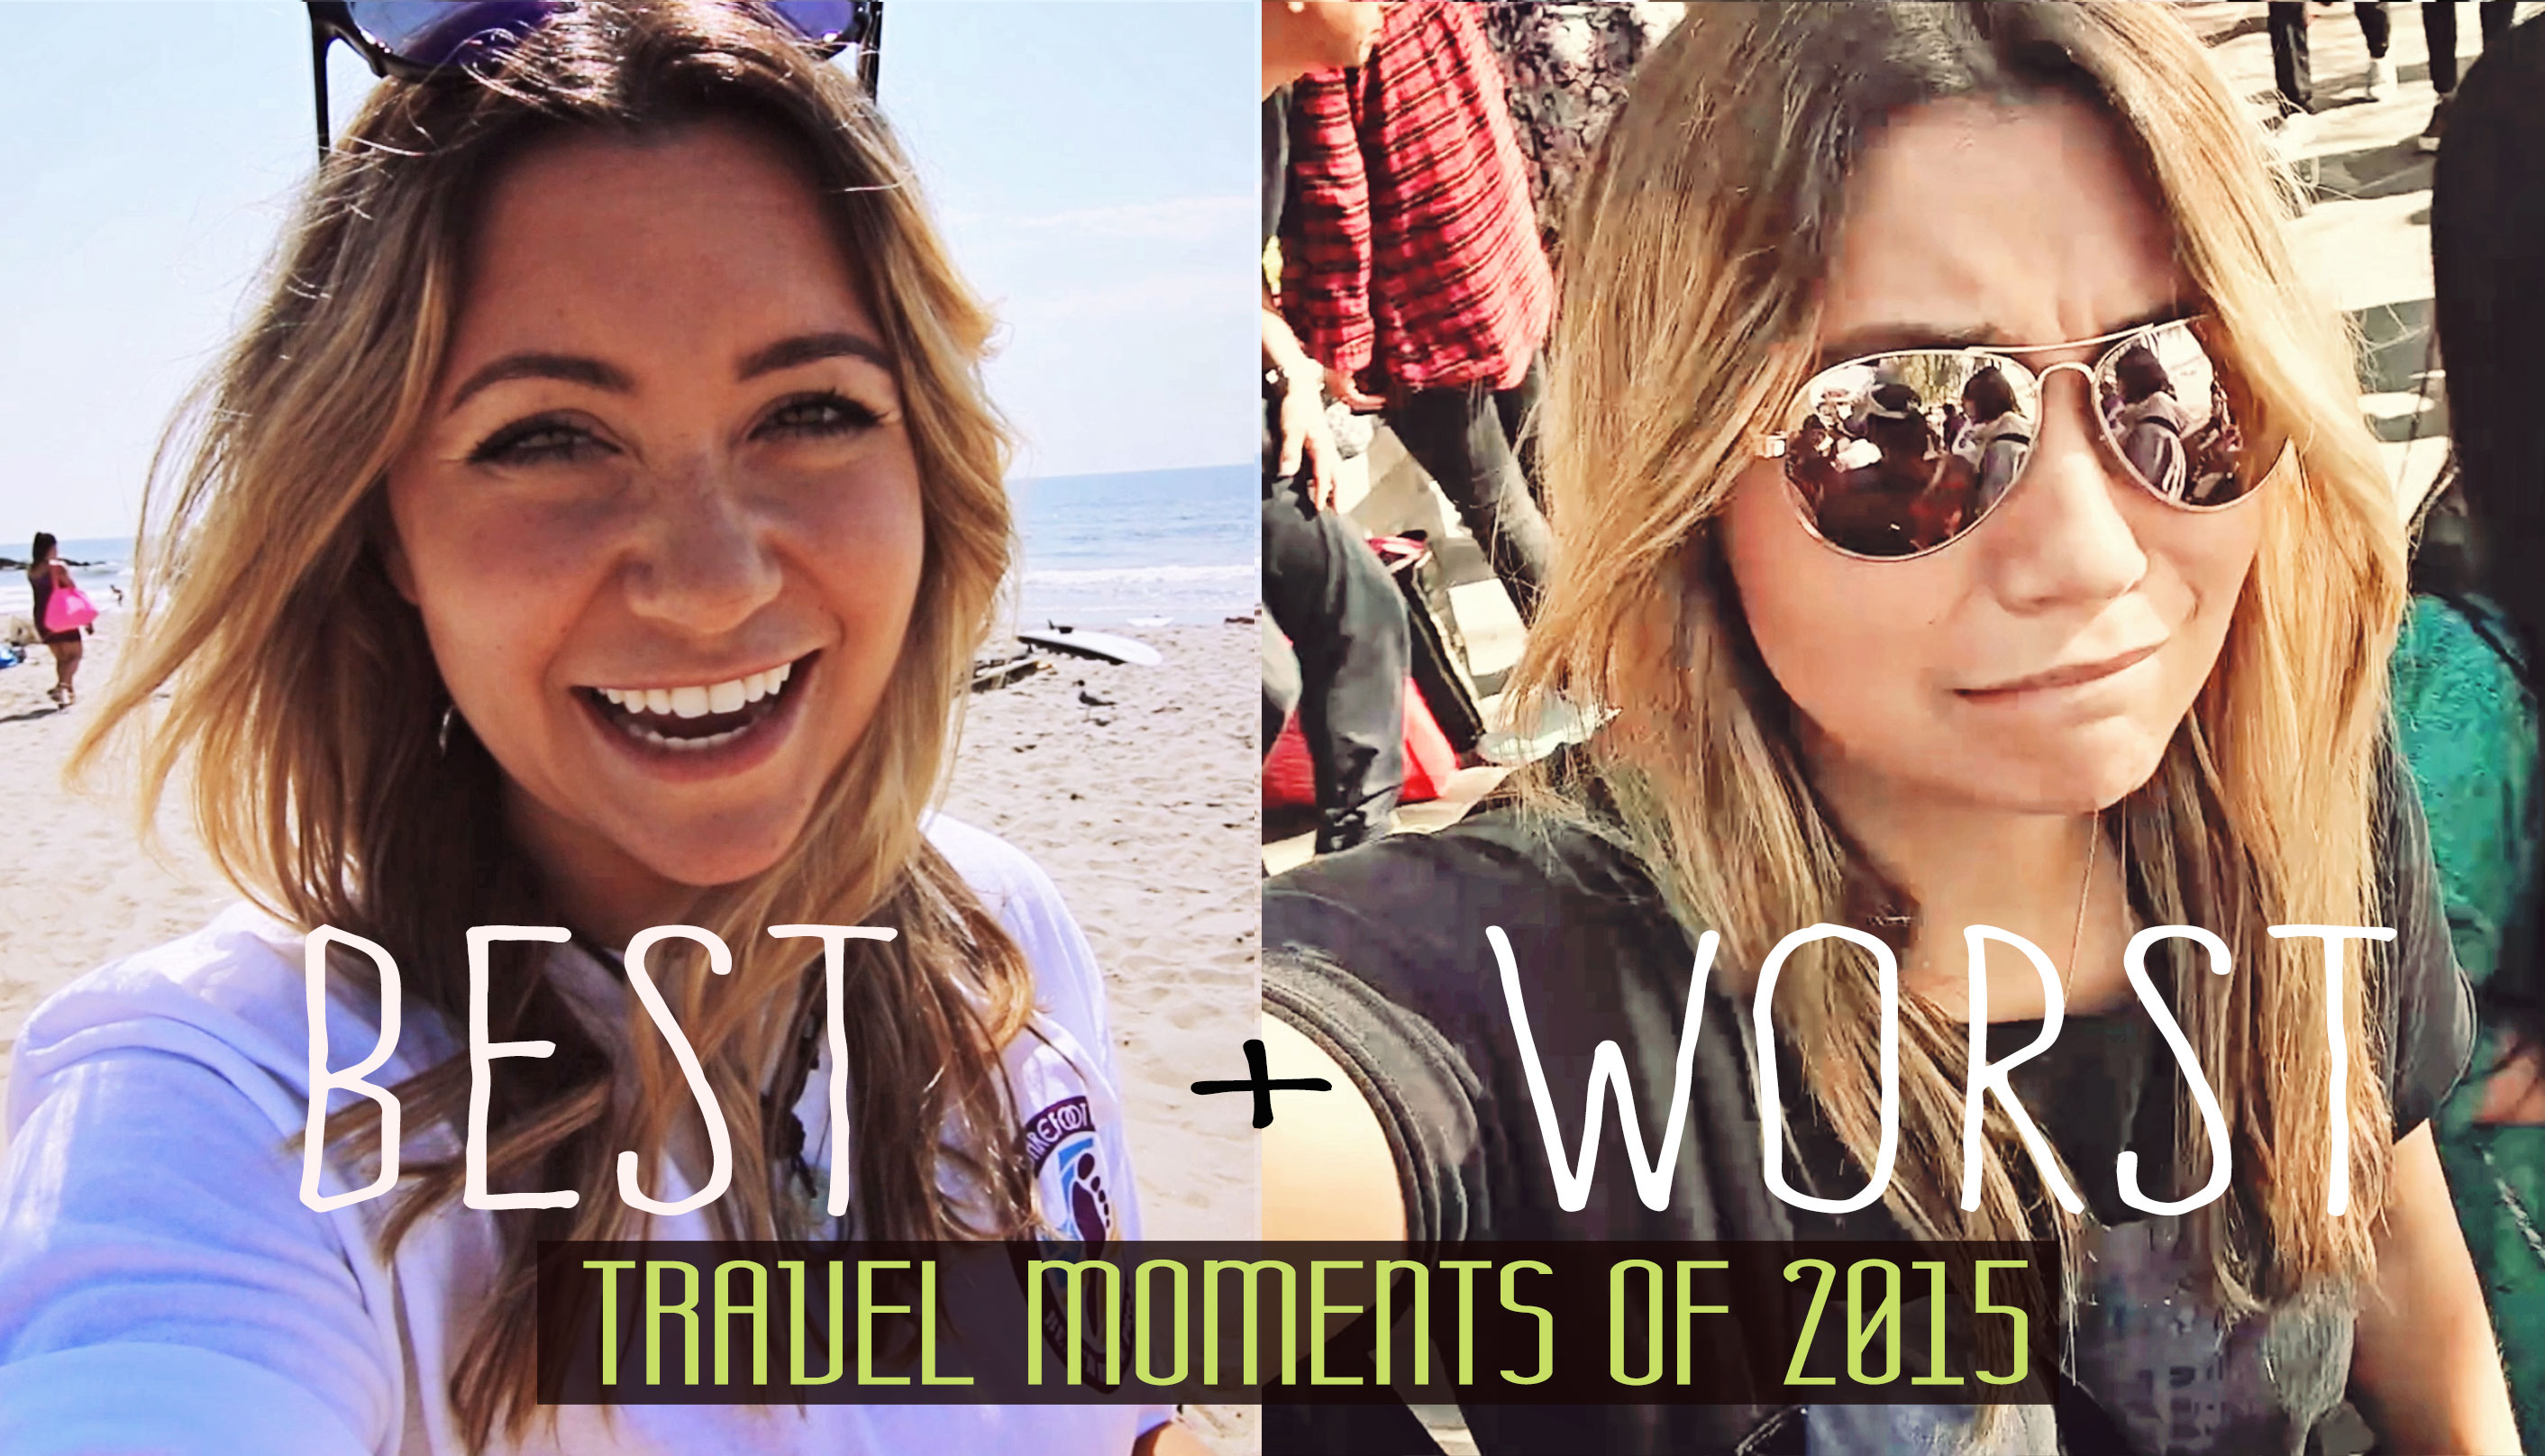 My 5 Worst Travel Moments of 2015   Travel moments